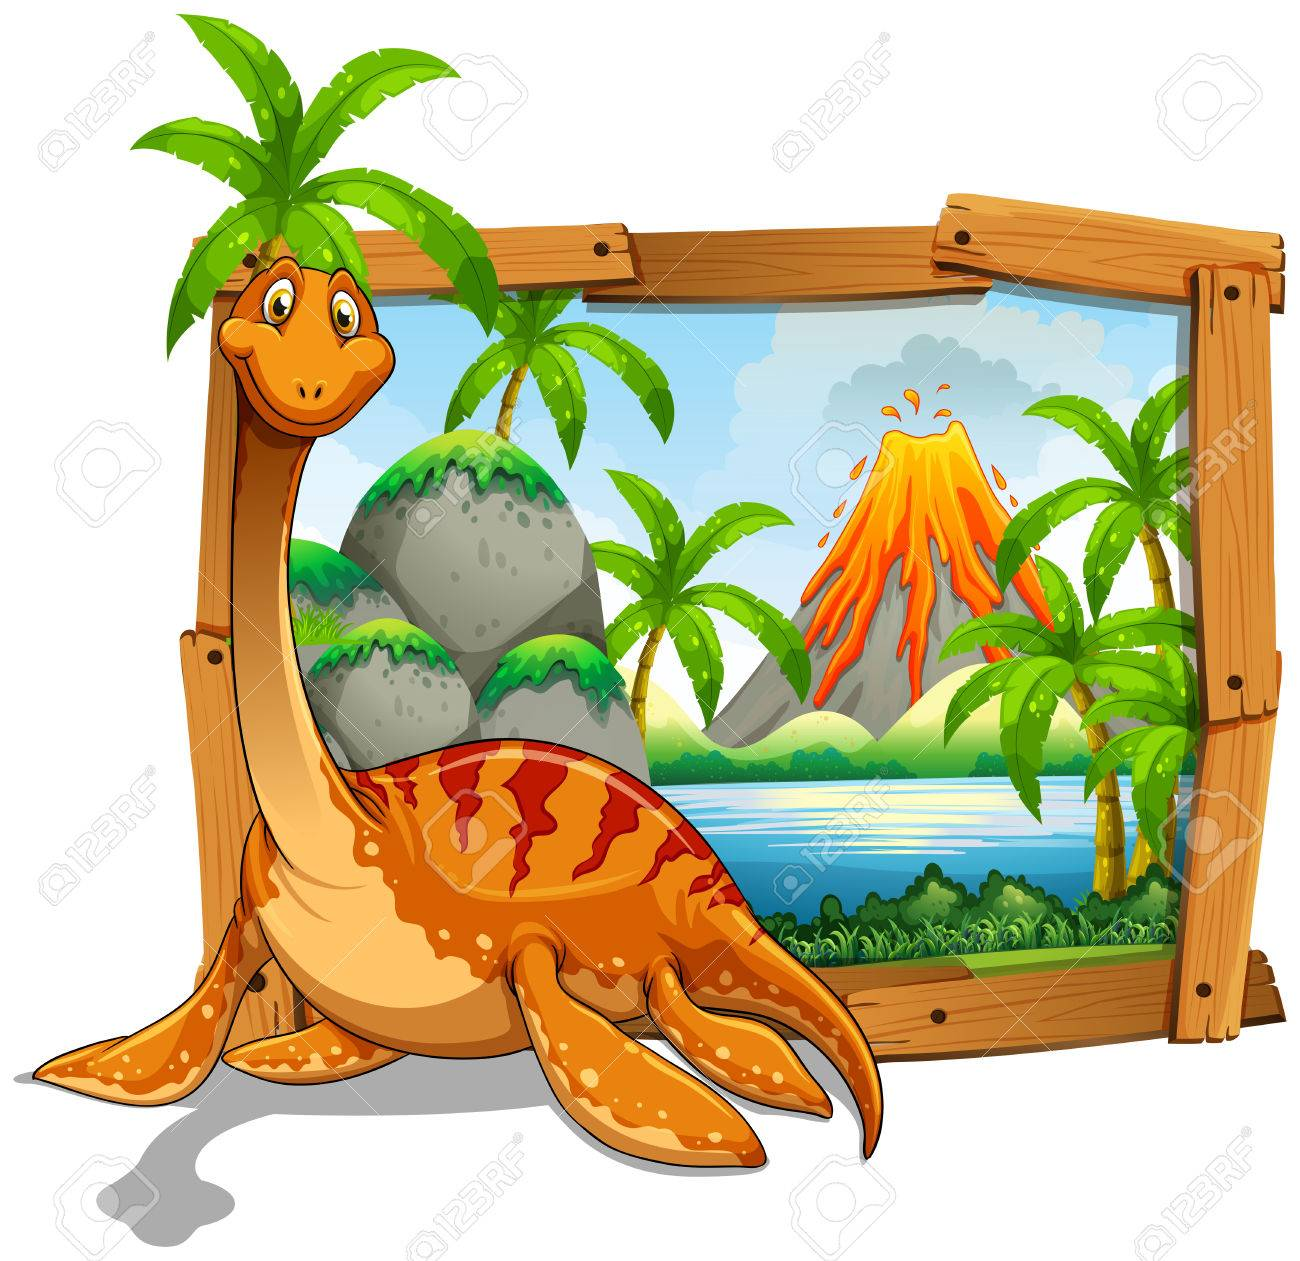 wooden frame with dinosaur at the lake illustration royalty free